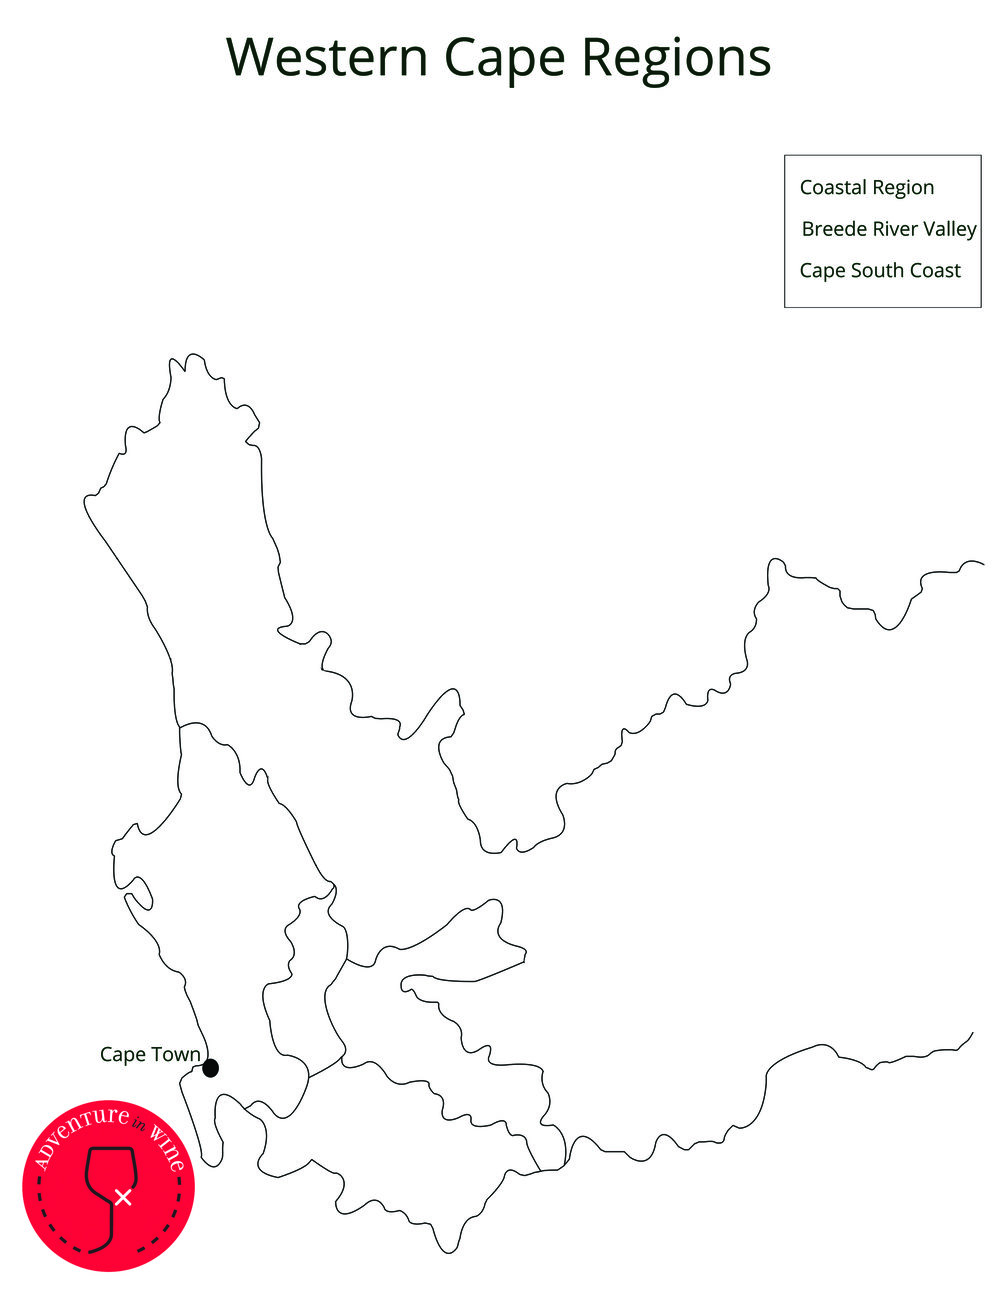 South Africa Regions of Western Cape b&w.jpg